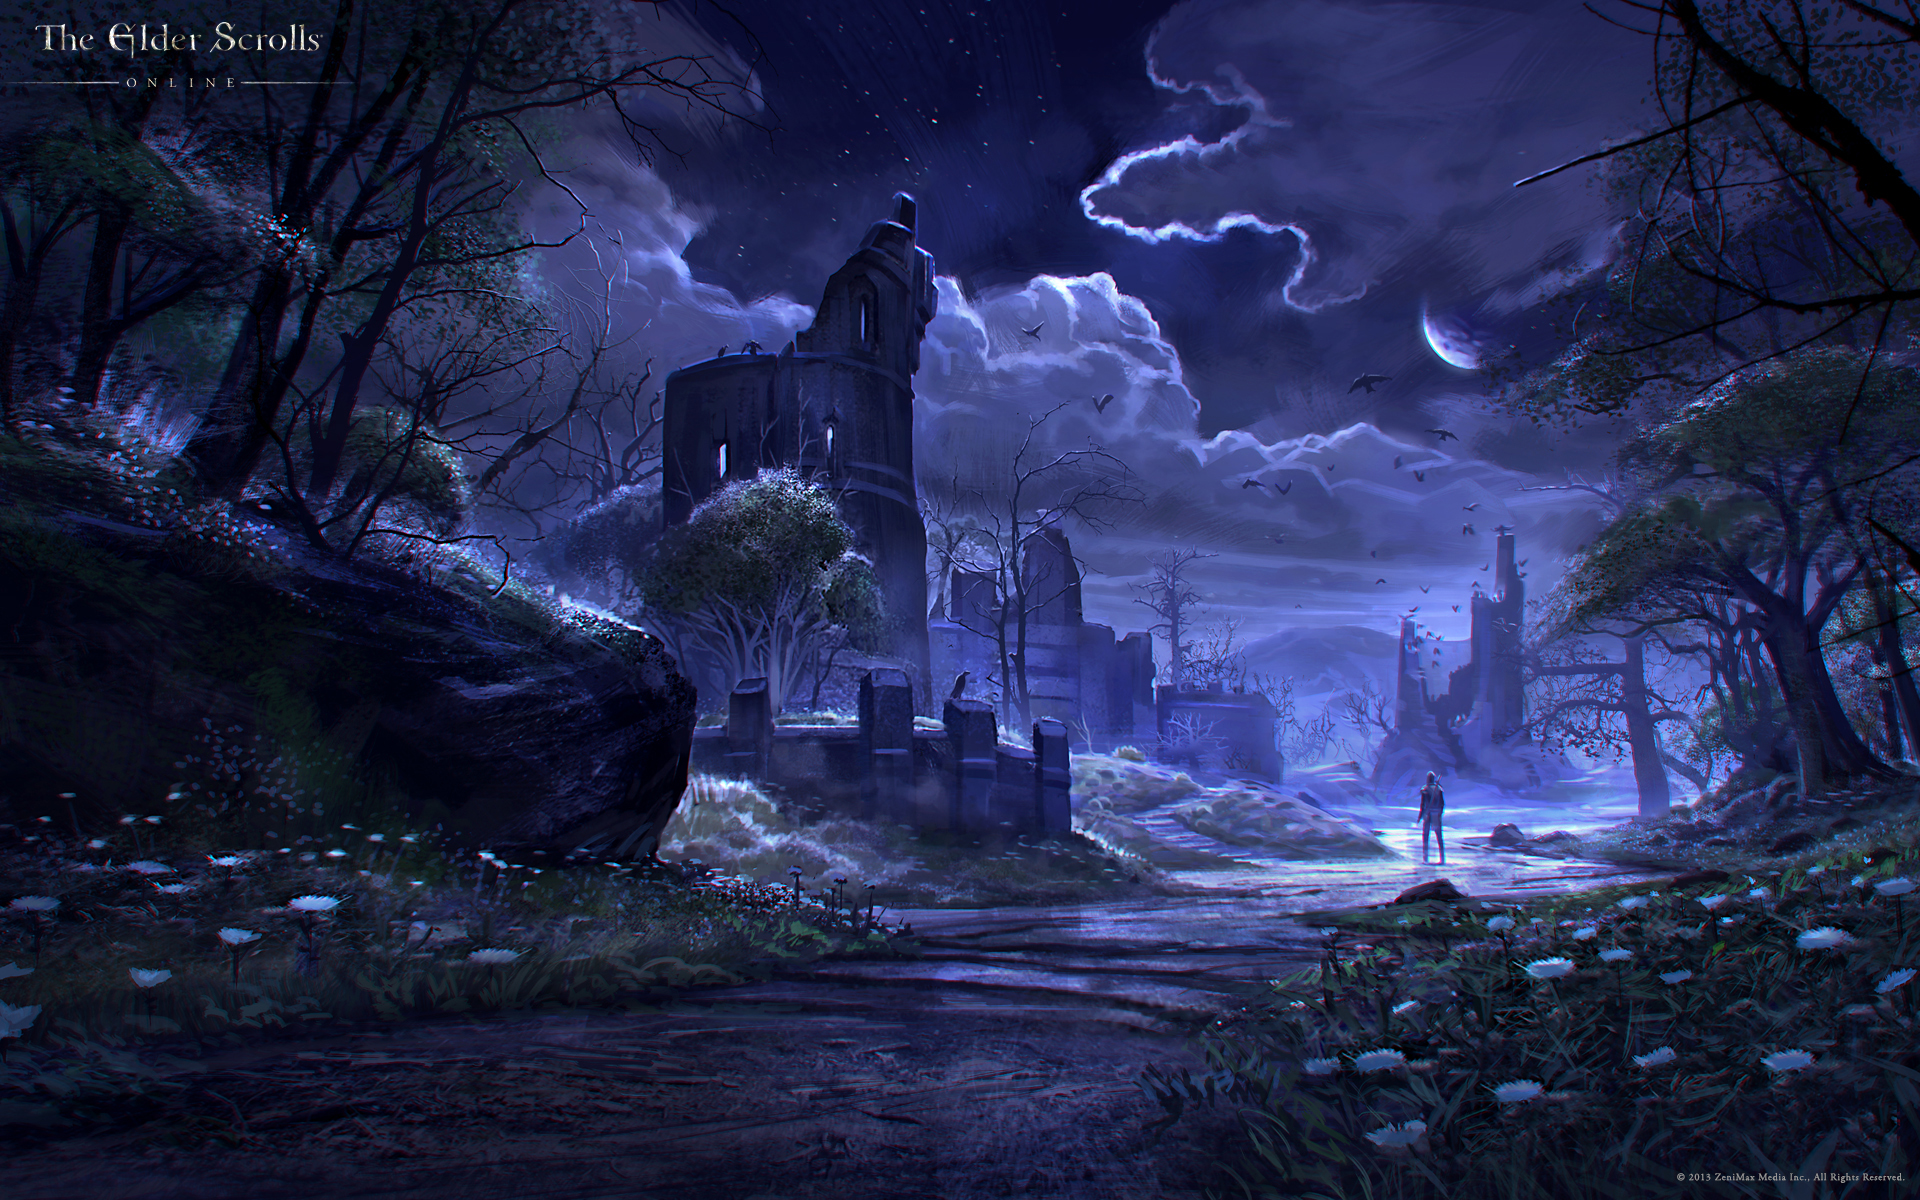 Free Download The Elder Scrolls Online Wallpaper Concept Art